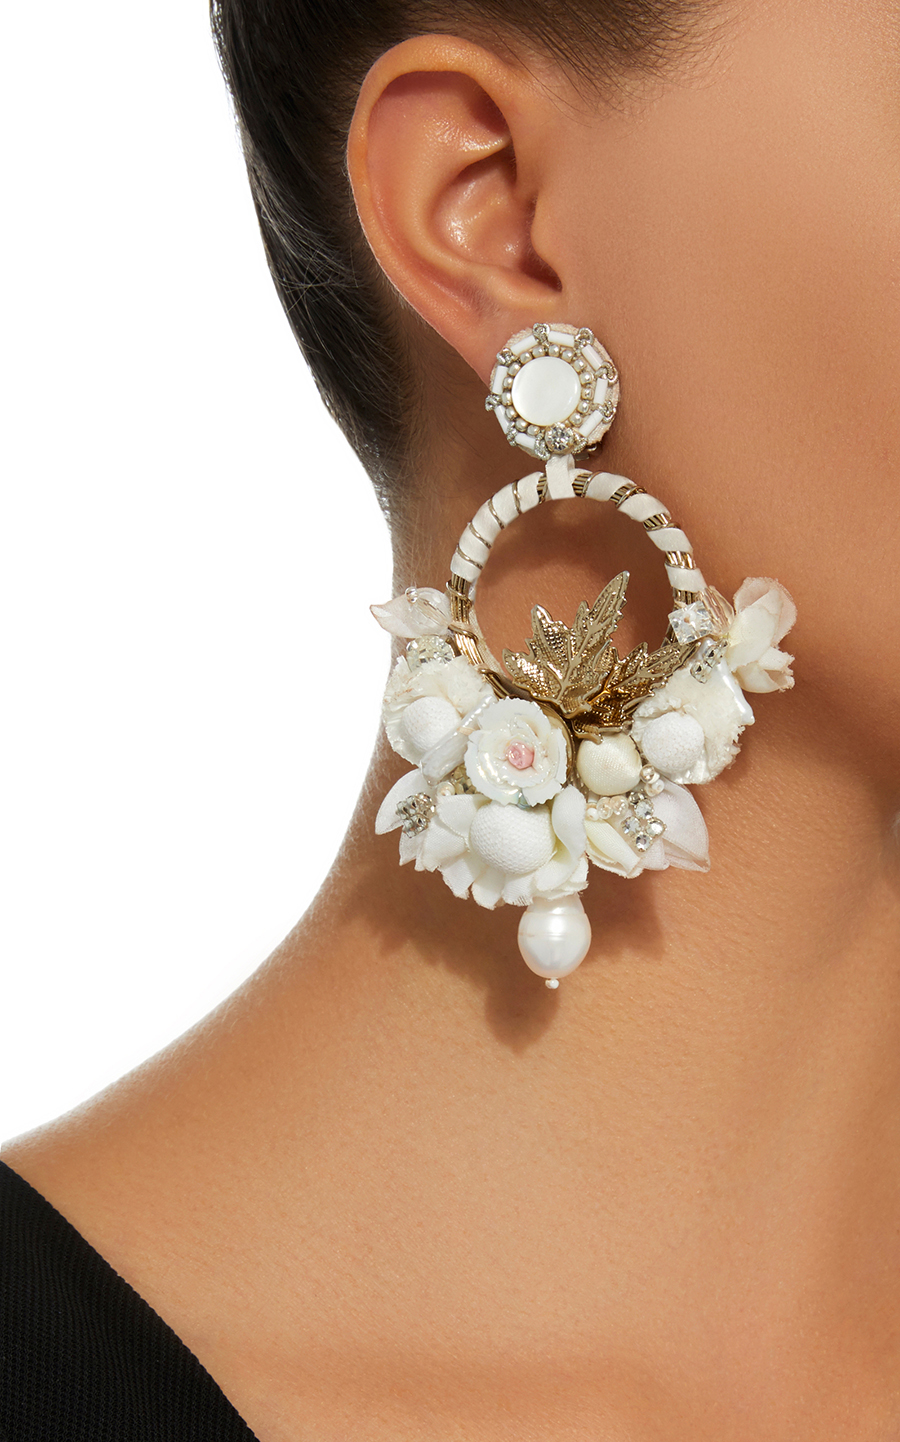 Ranjana Khan earrings White Floral Hoop stylish clip on earrings